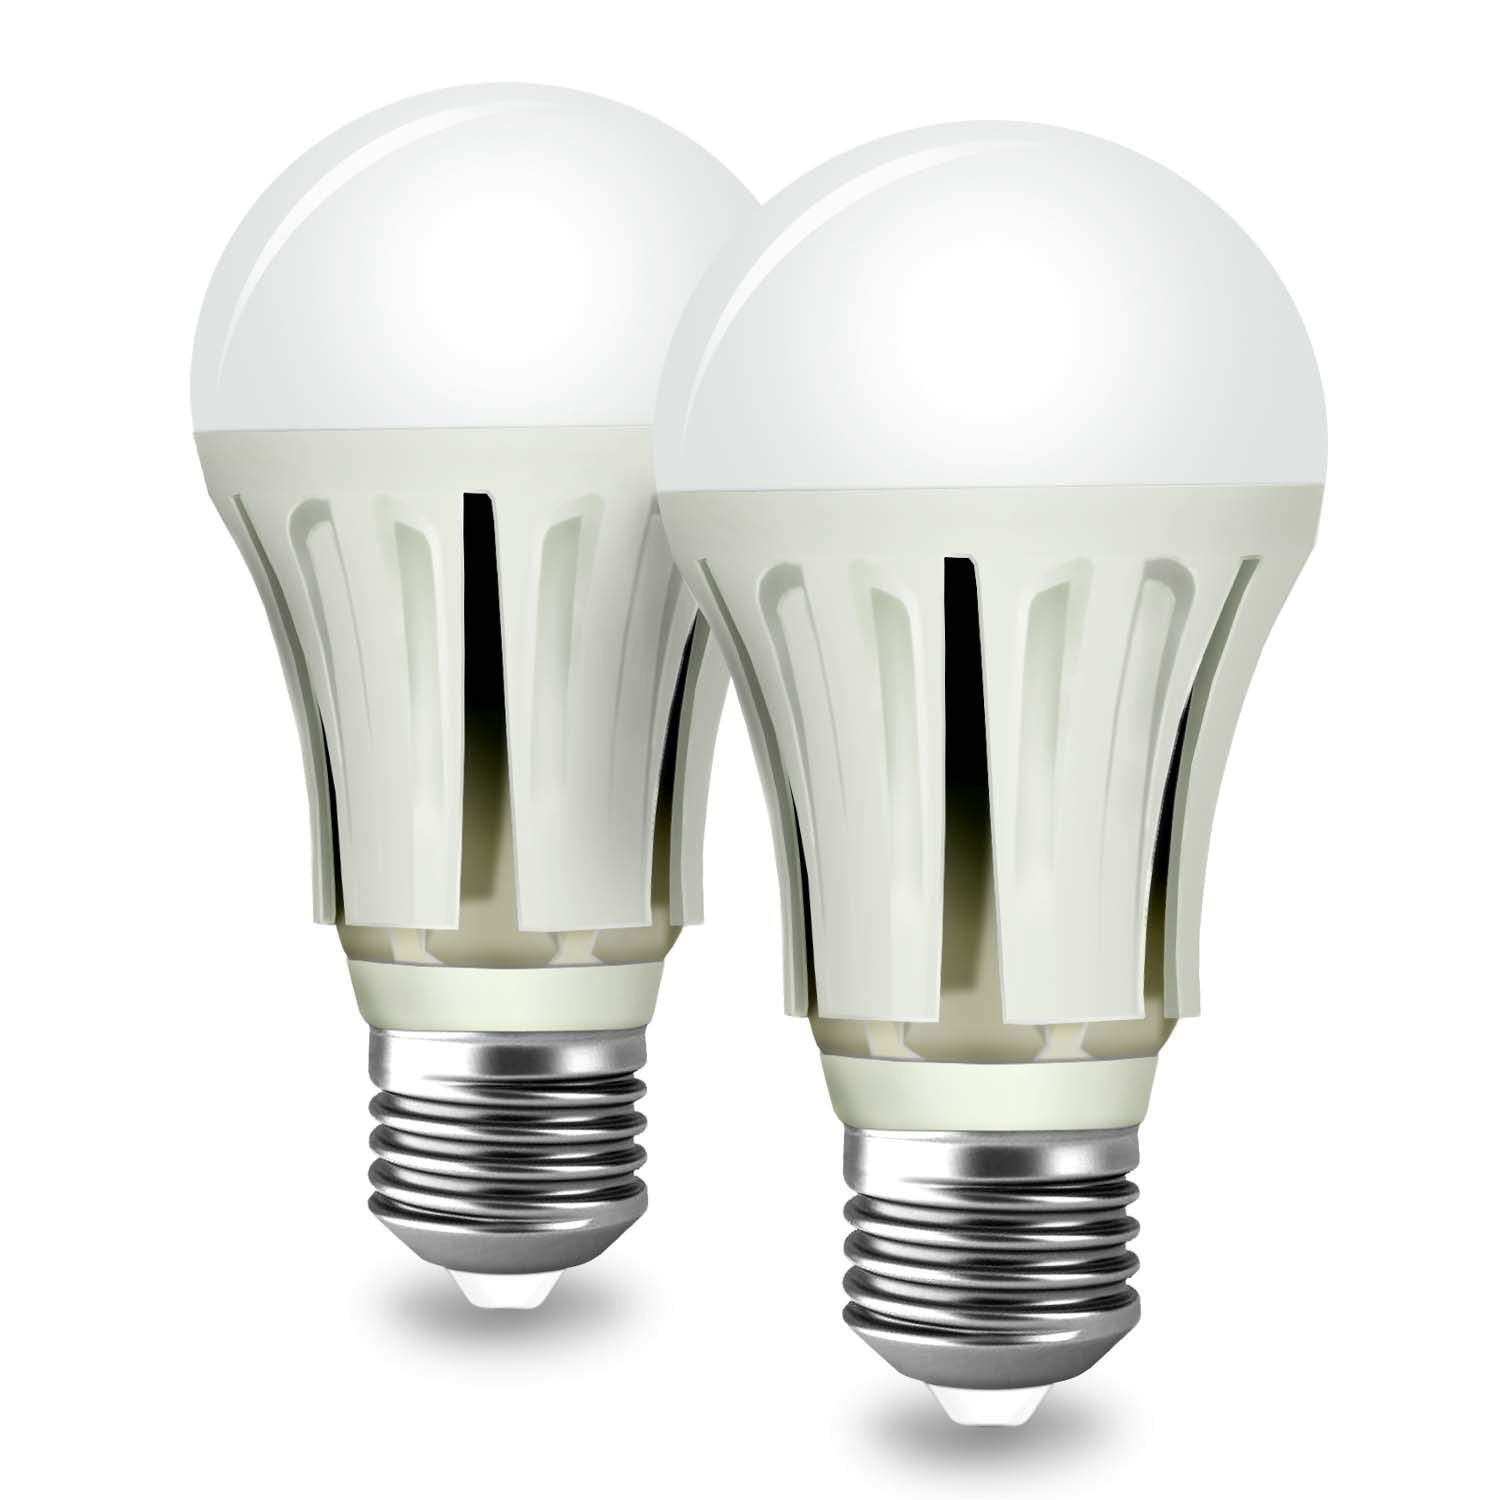 Dusk to Dawn Light Bulbs,ProPOW A19 Smart Sensor Light Bulb 9W 5000k LED Bulbs Automatic on/Off Indoor/Outdoor Lighting Lamp for Porch Garage Driveway Yard Hallway Patio(E26 Daylight White 2-Pack)